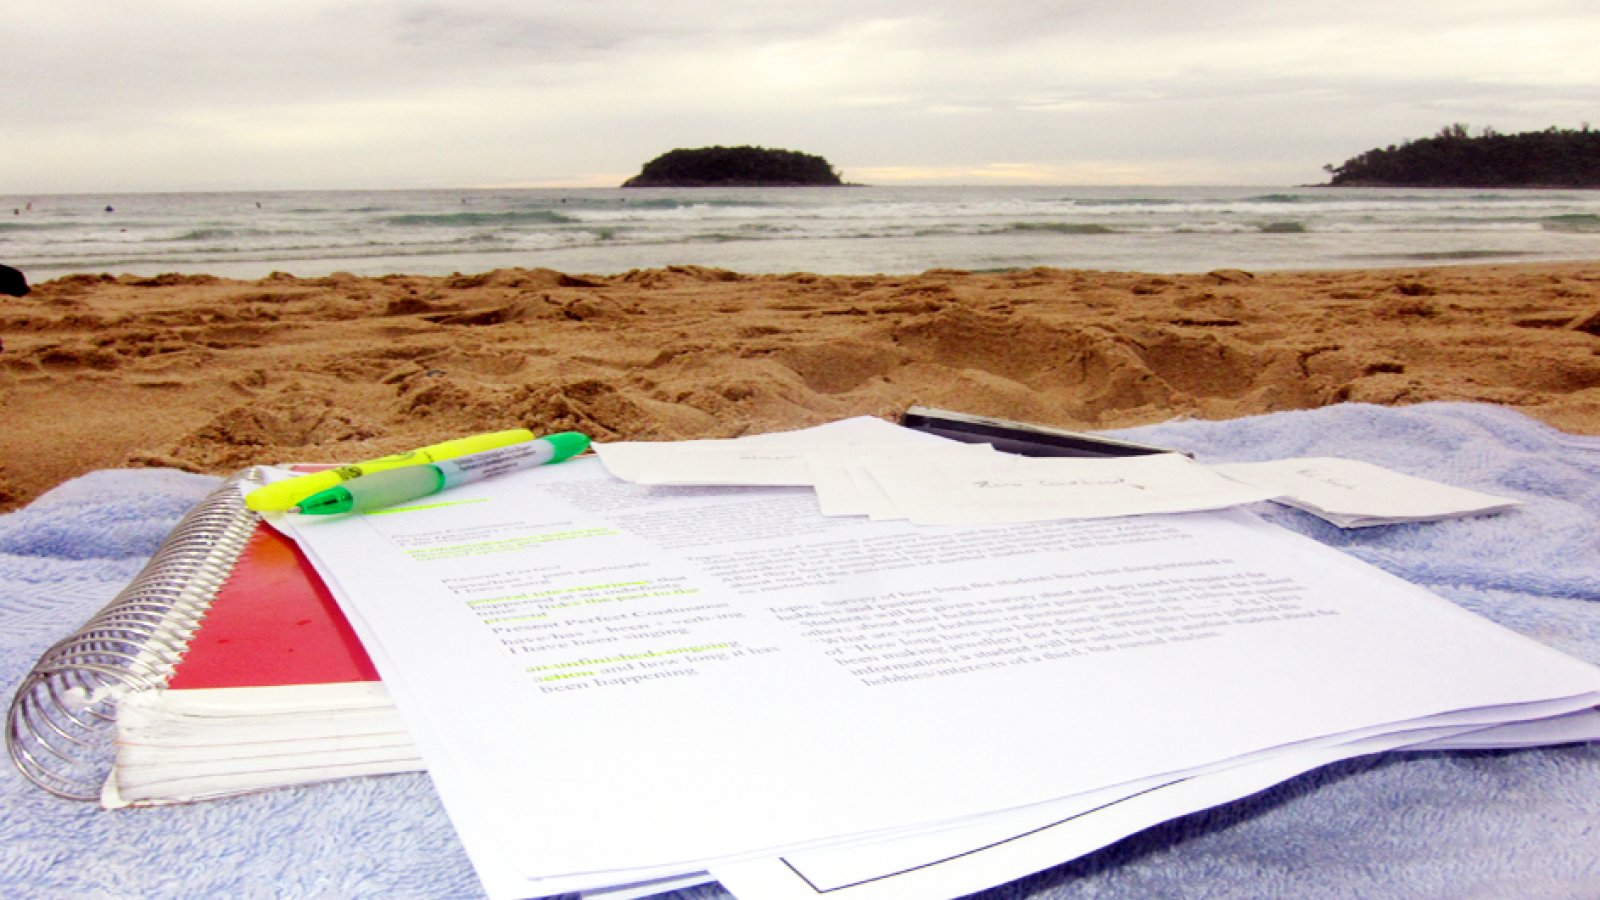 study materials at the beach